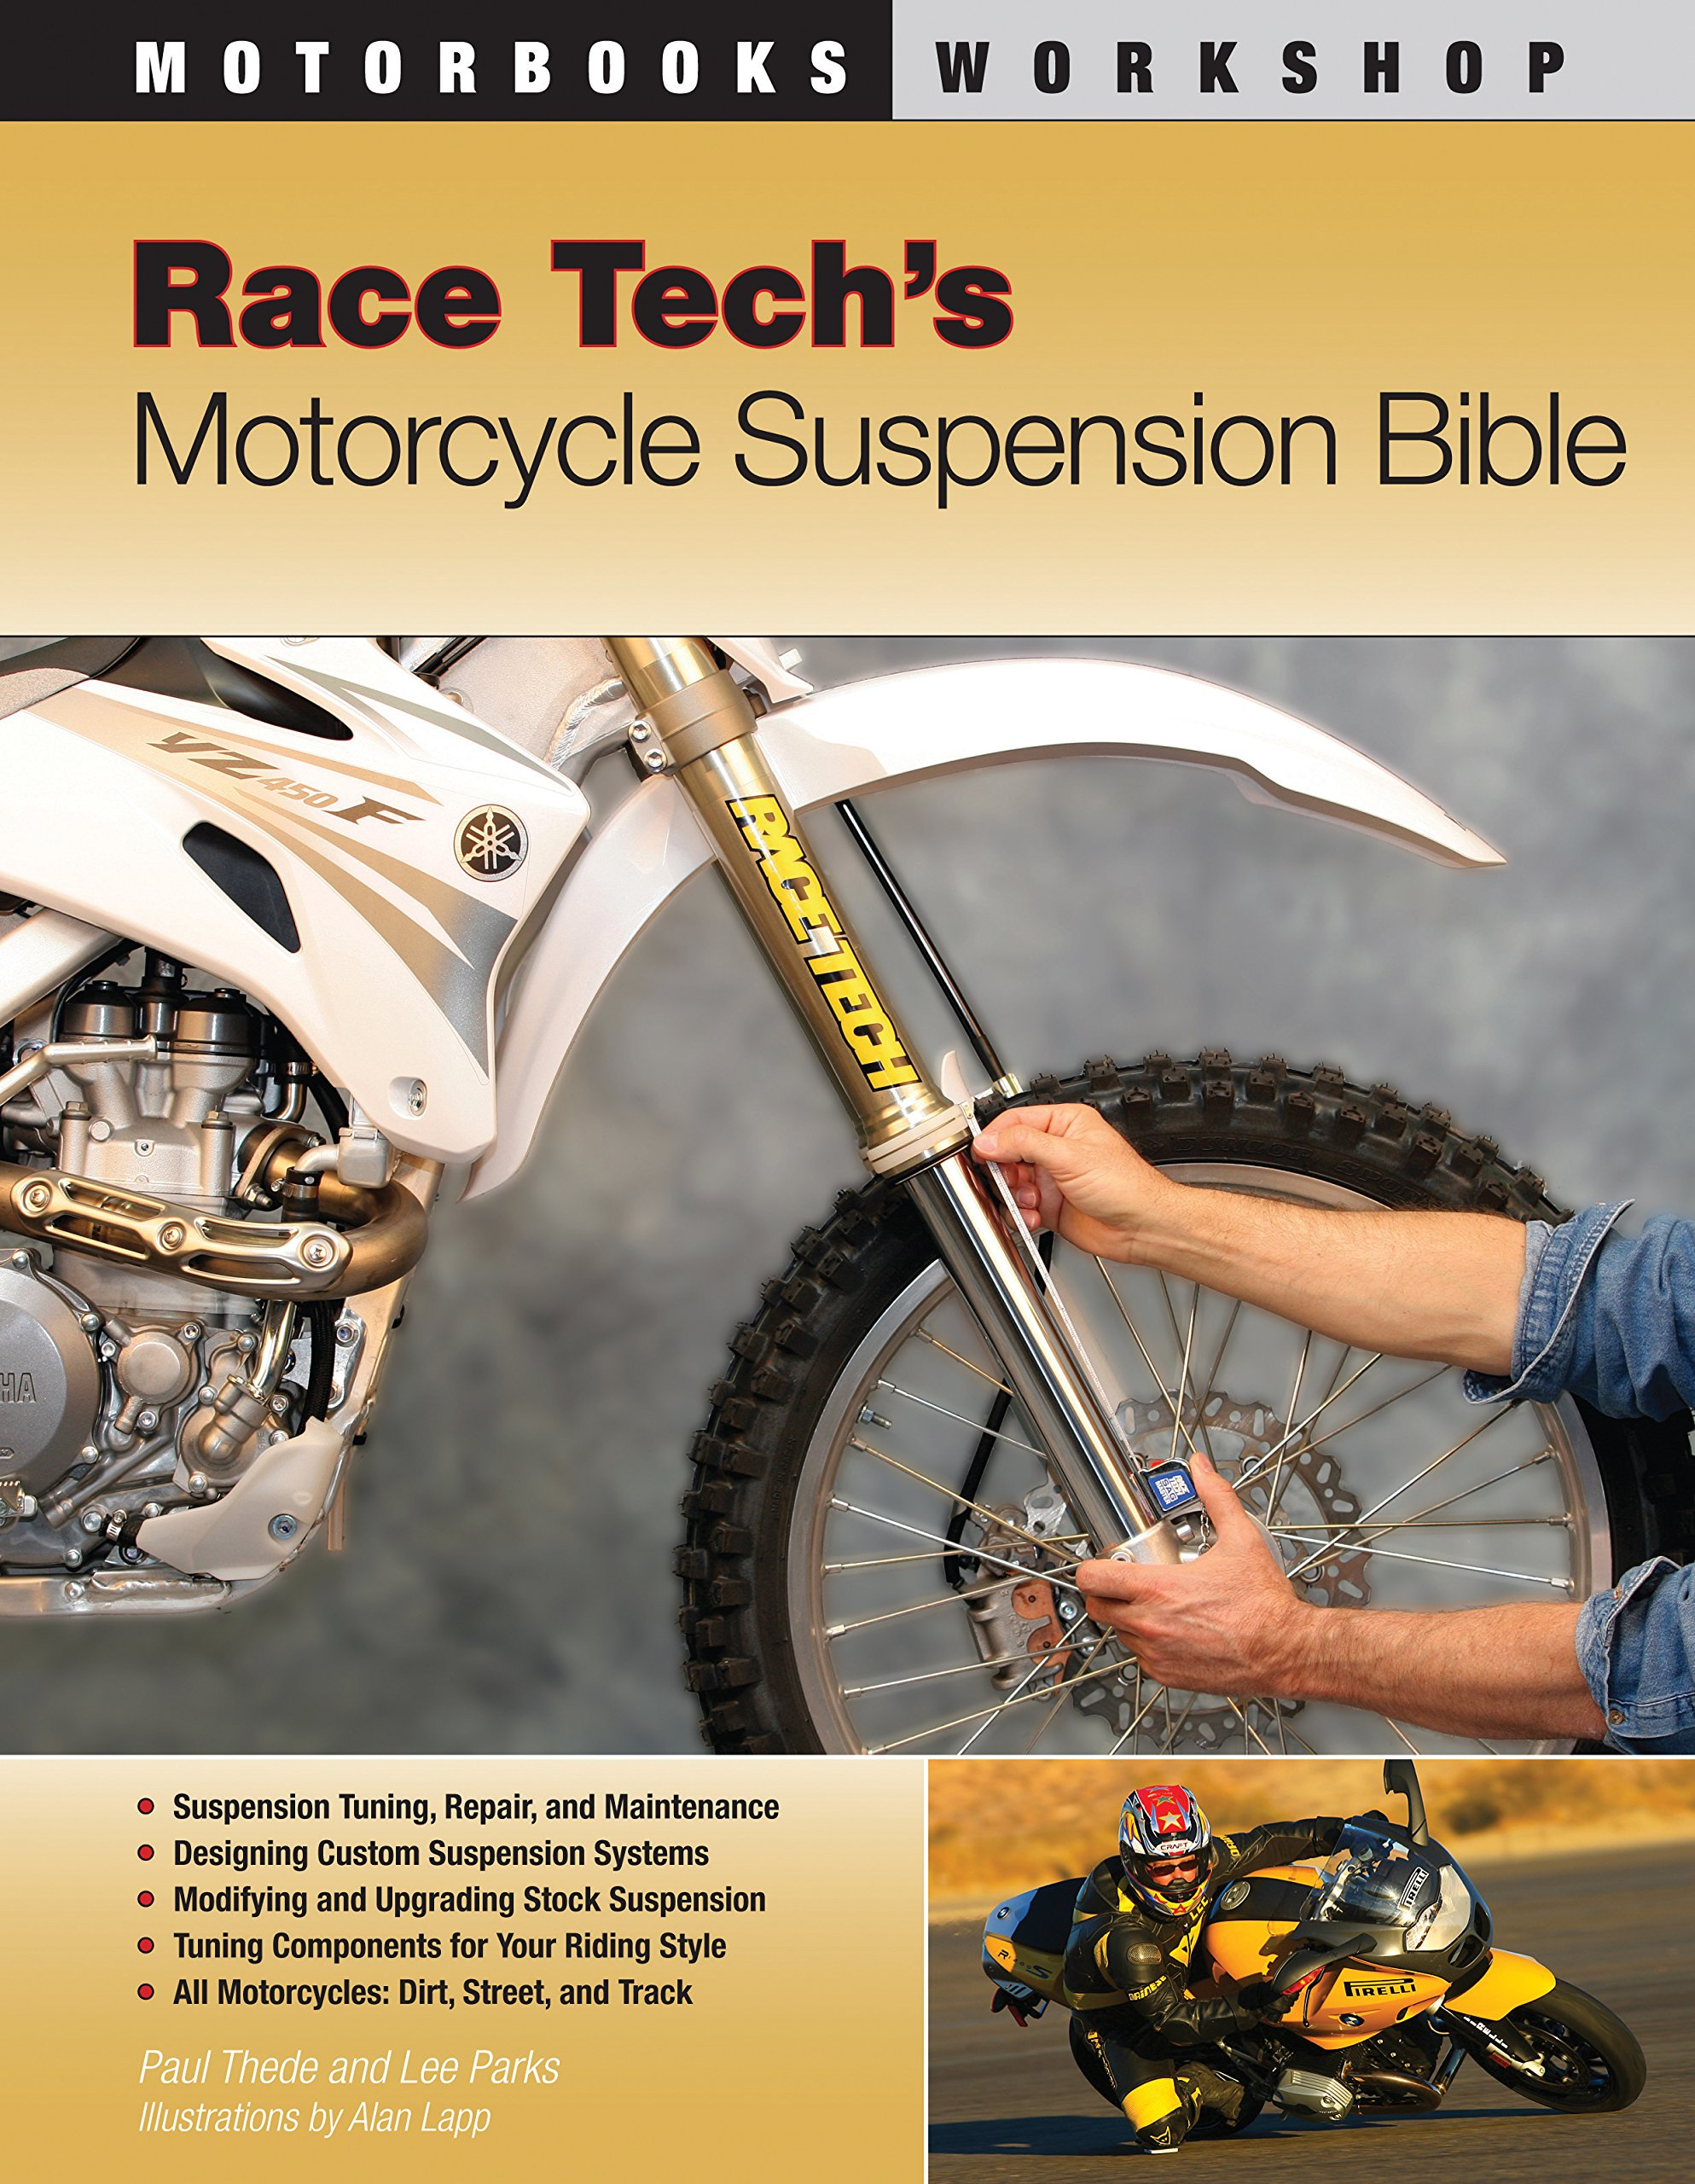 Race Tech's Motorcycle Suspension Bible (Motorbooks Workshop